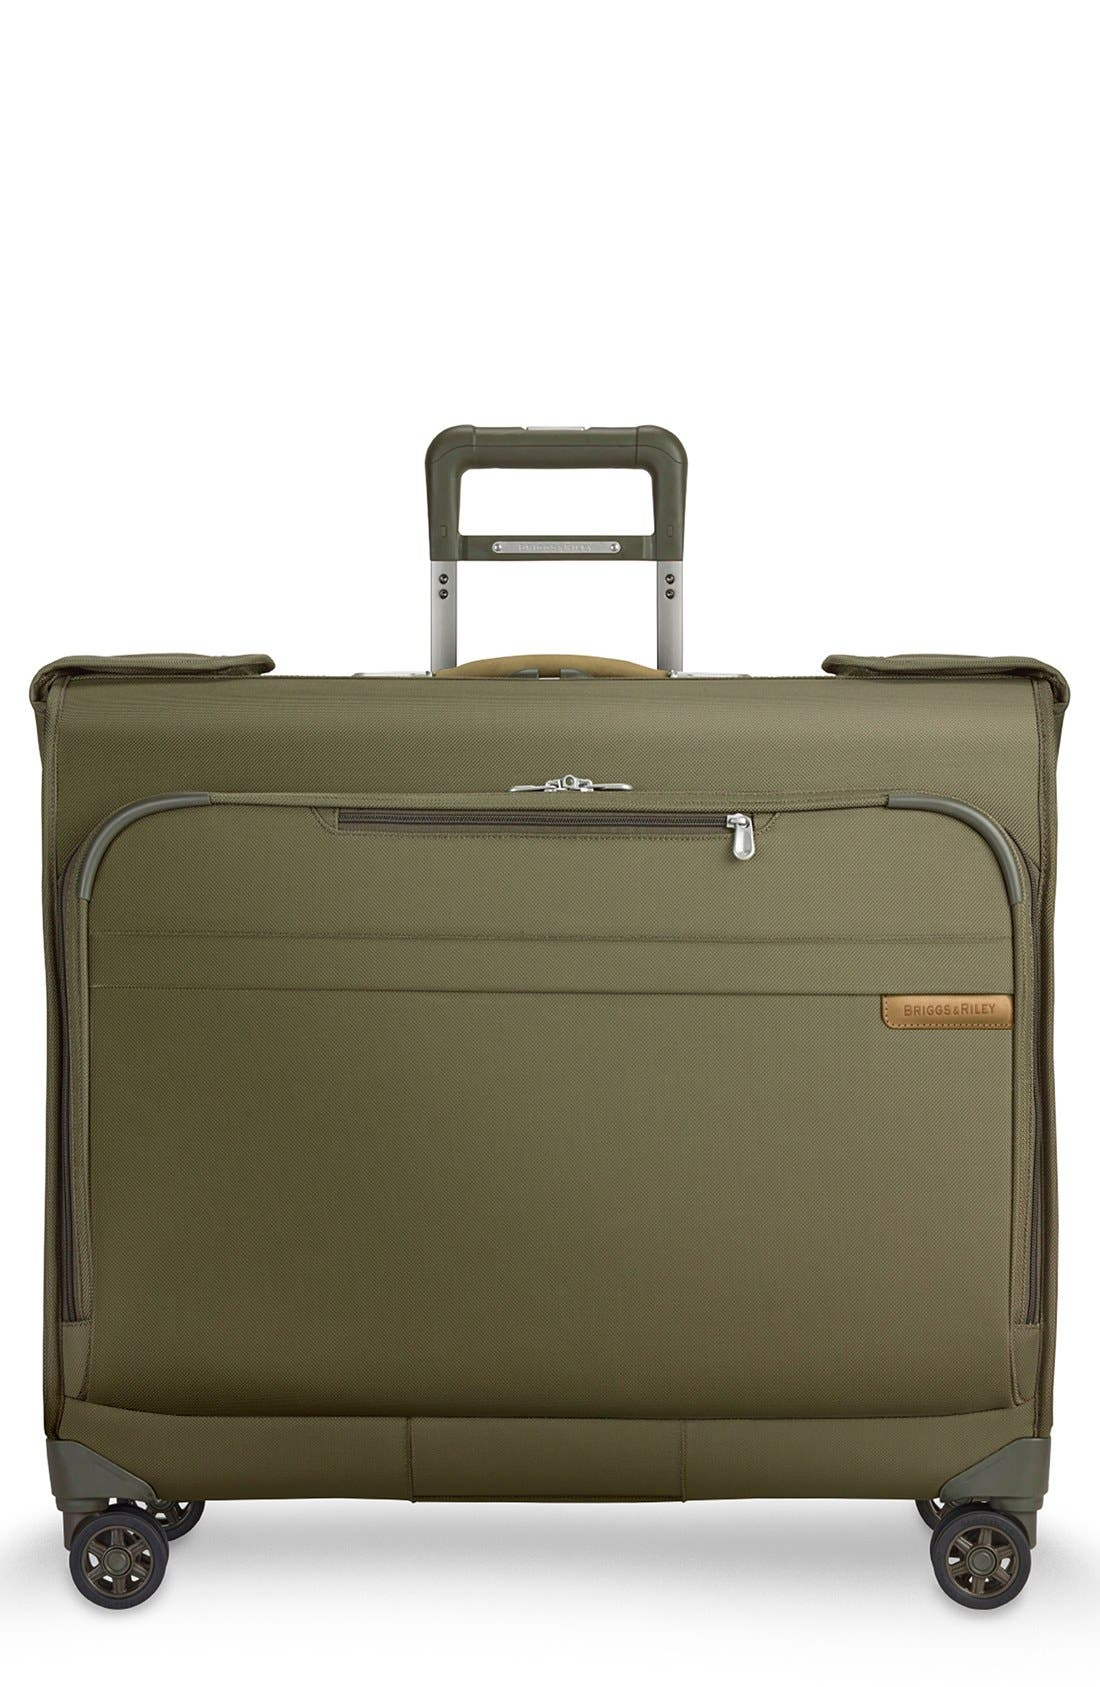 BRIGGS & RILEY 'Baseline' Wheeled Garment Bag